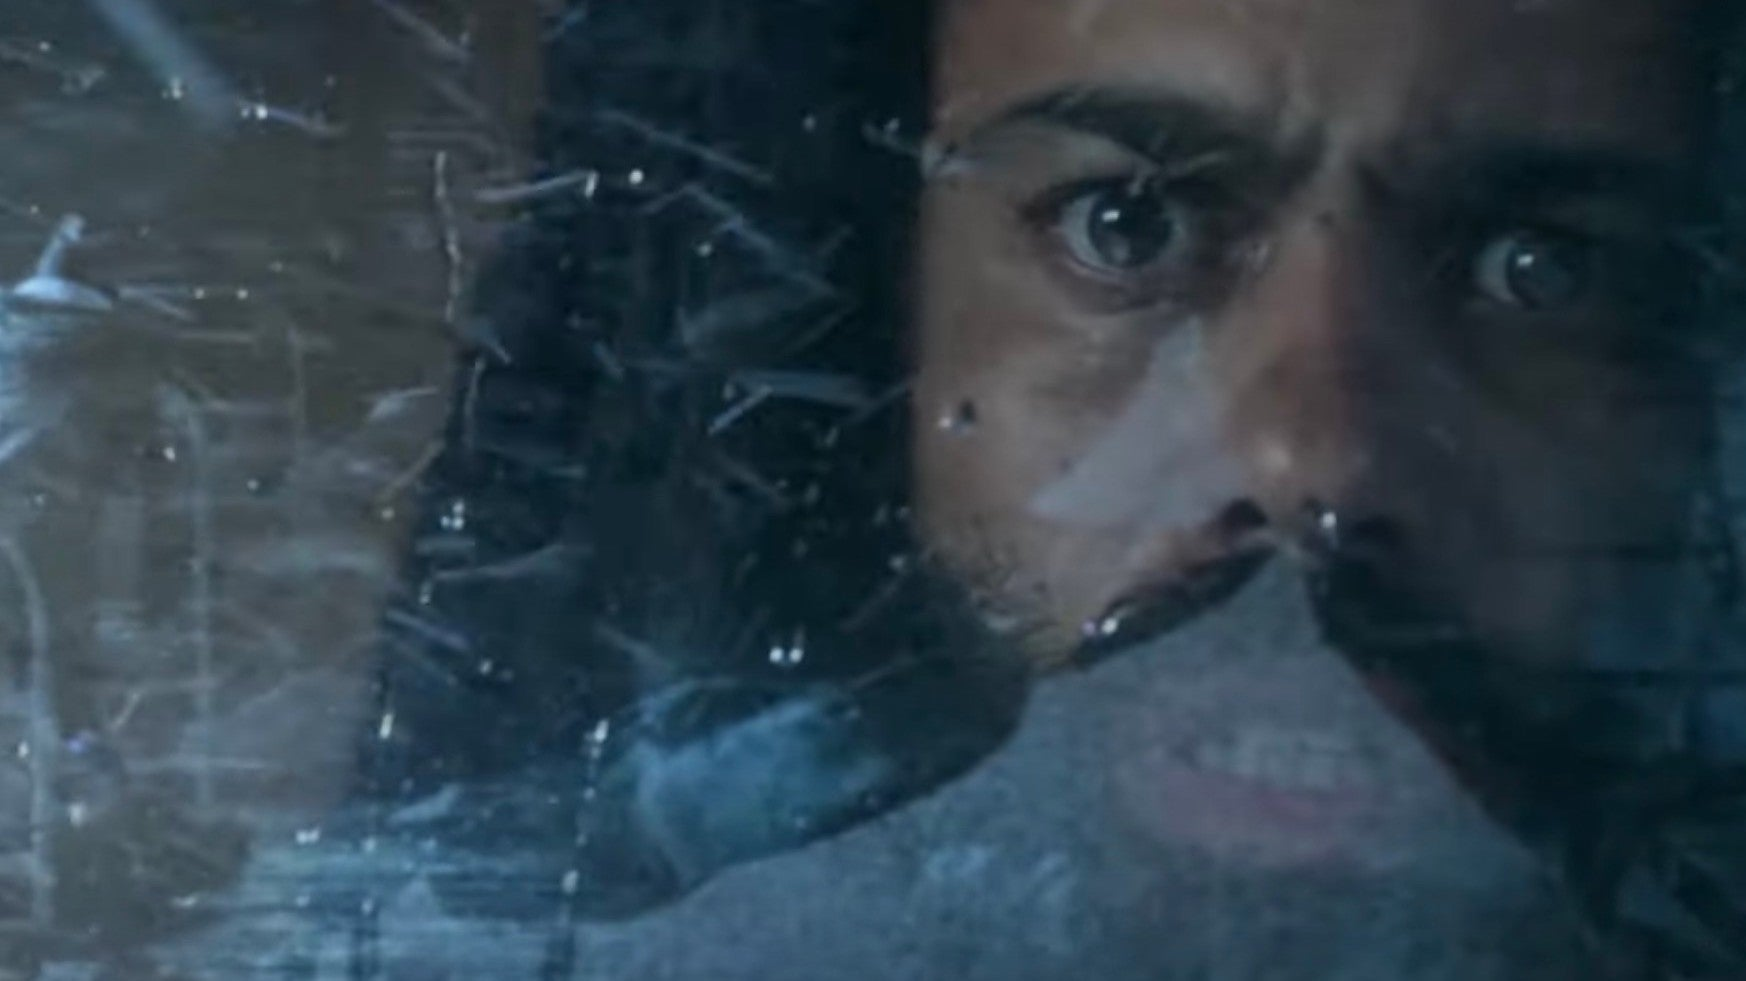 The Latest Snowpiercer Trailer Shows Limbs Freezing And Revolutions Beginning